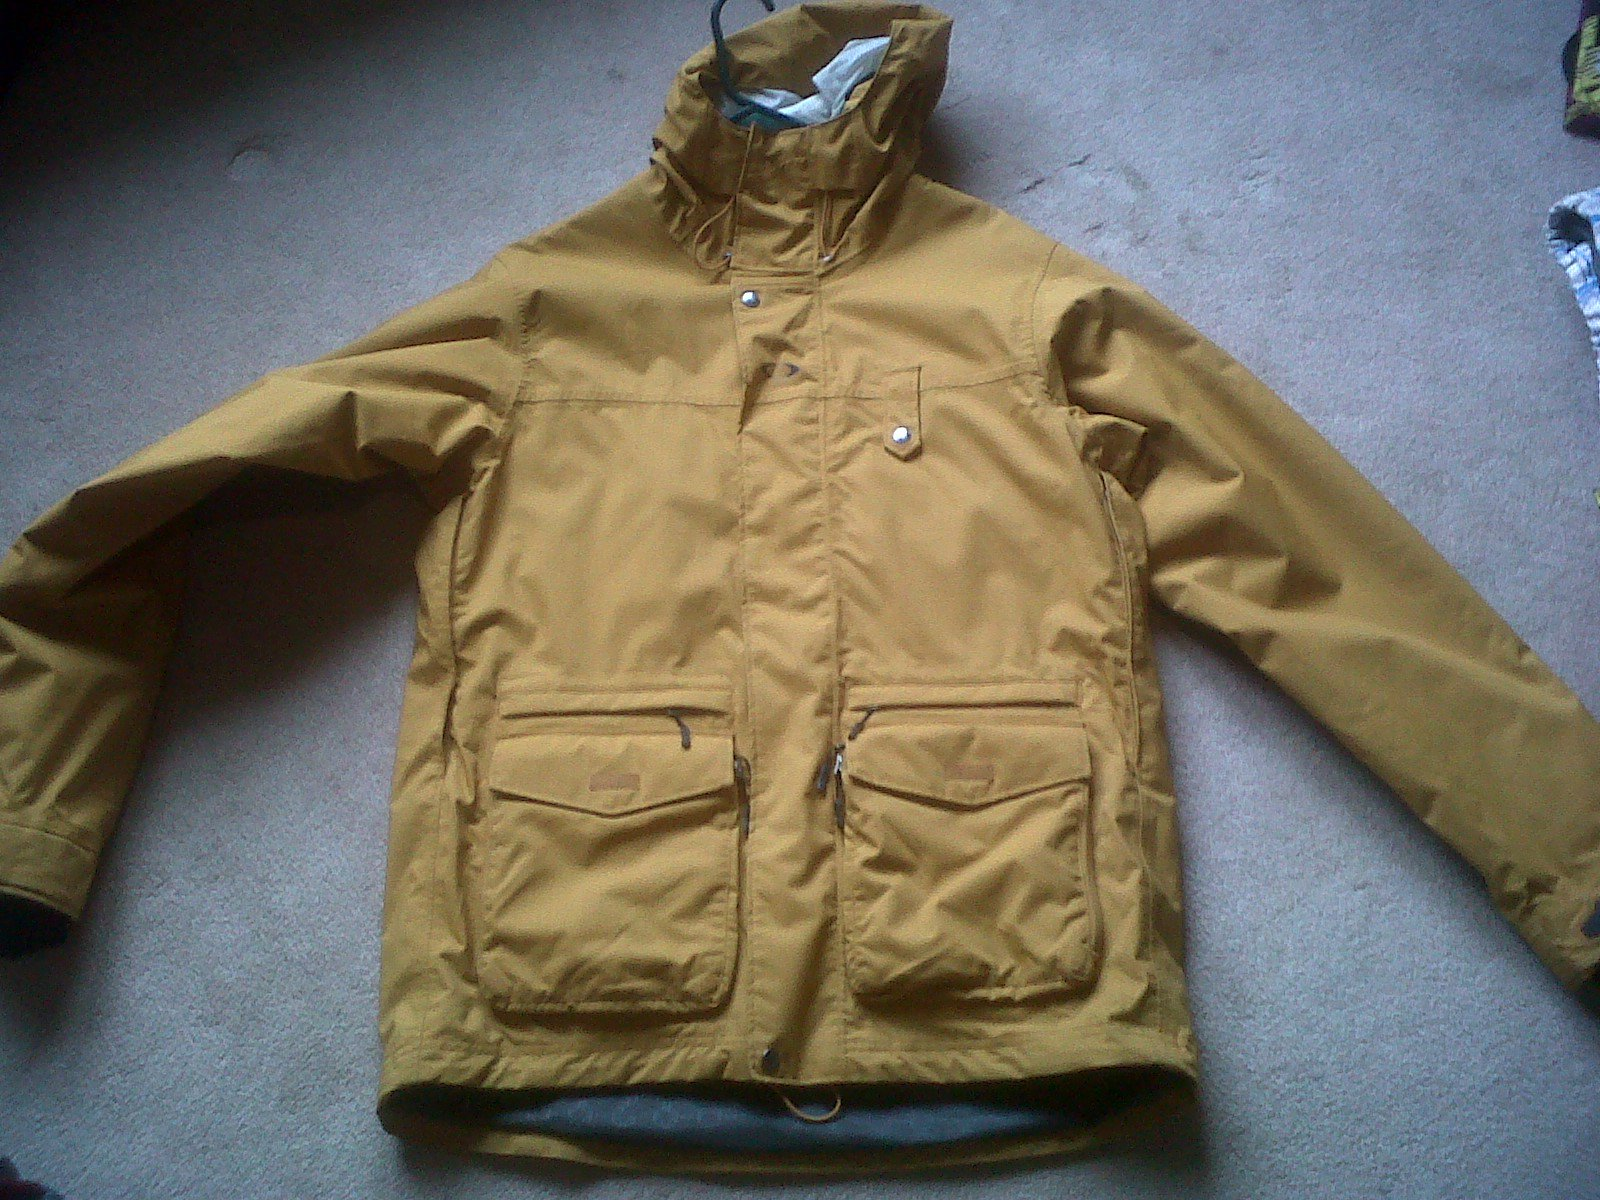 OAKLEY JACKET FOR SALE, CHECK THREAD